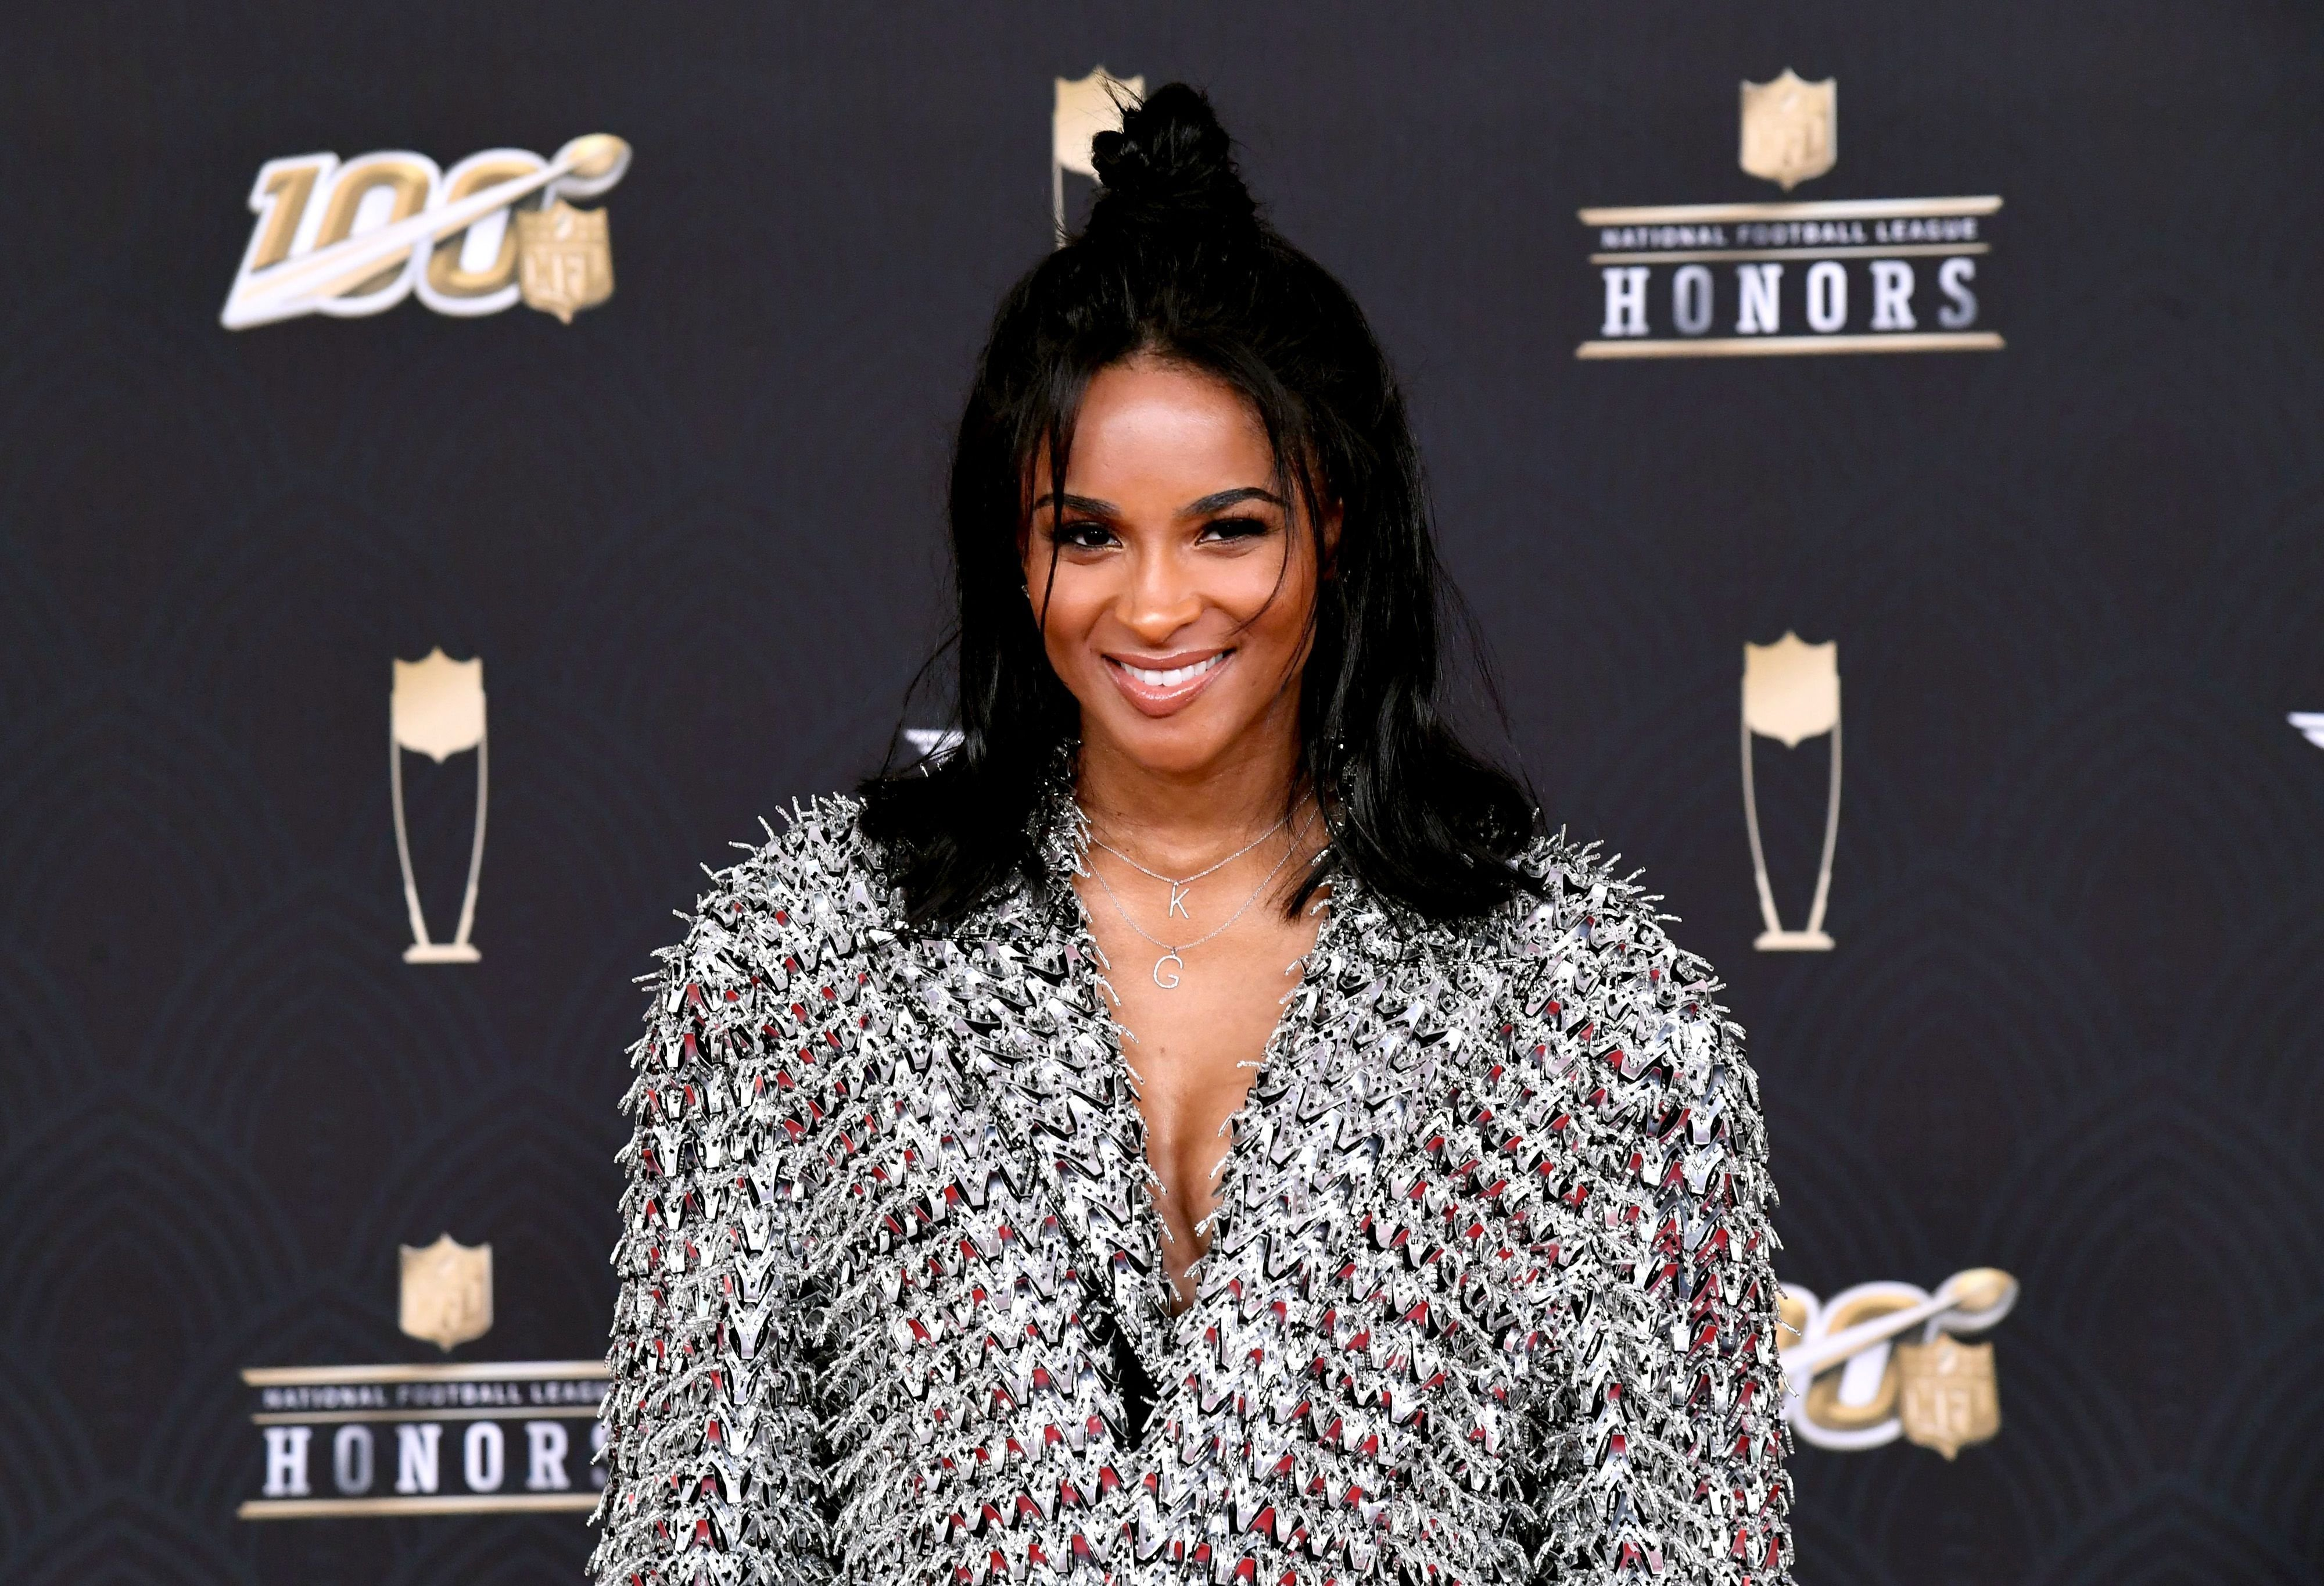 Ciara during the 9th Annual NFL Honors at Adrienne Arsht Center on February 01, 2020 in Miami, Florida. | Source: Getty Images